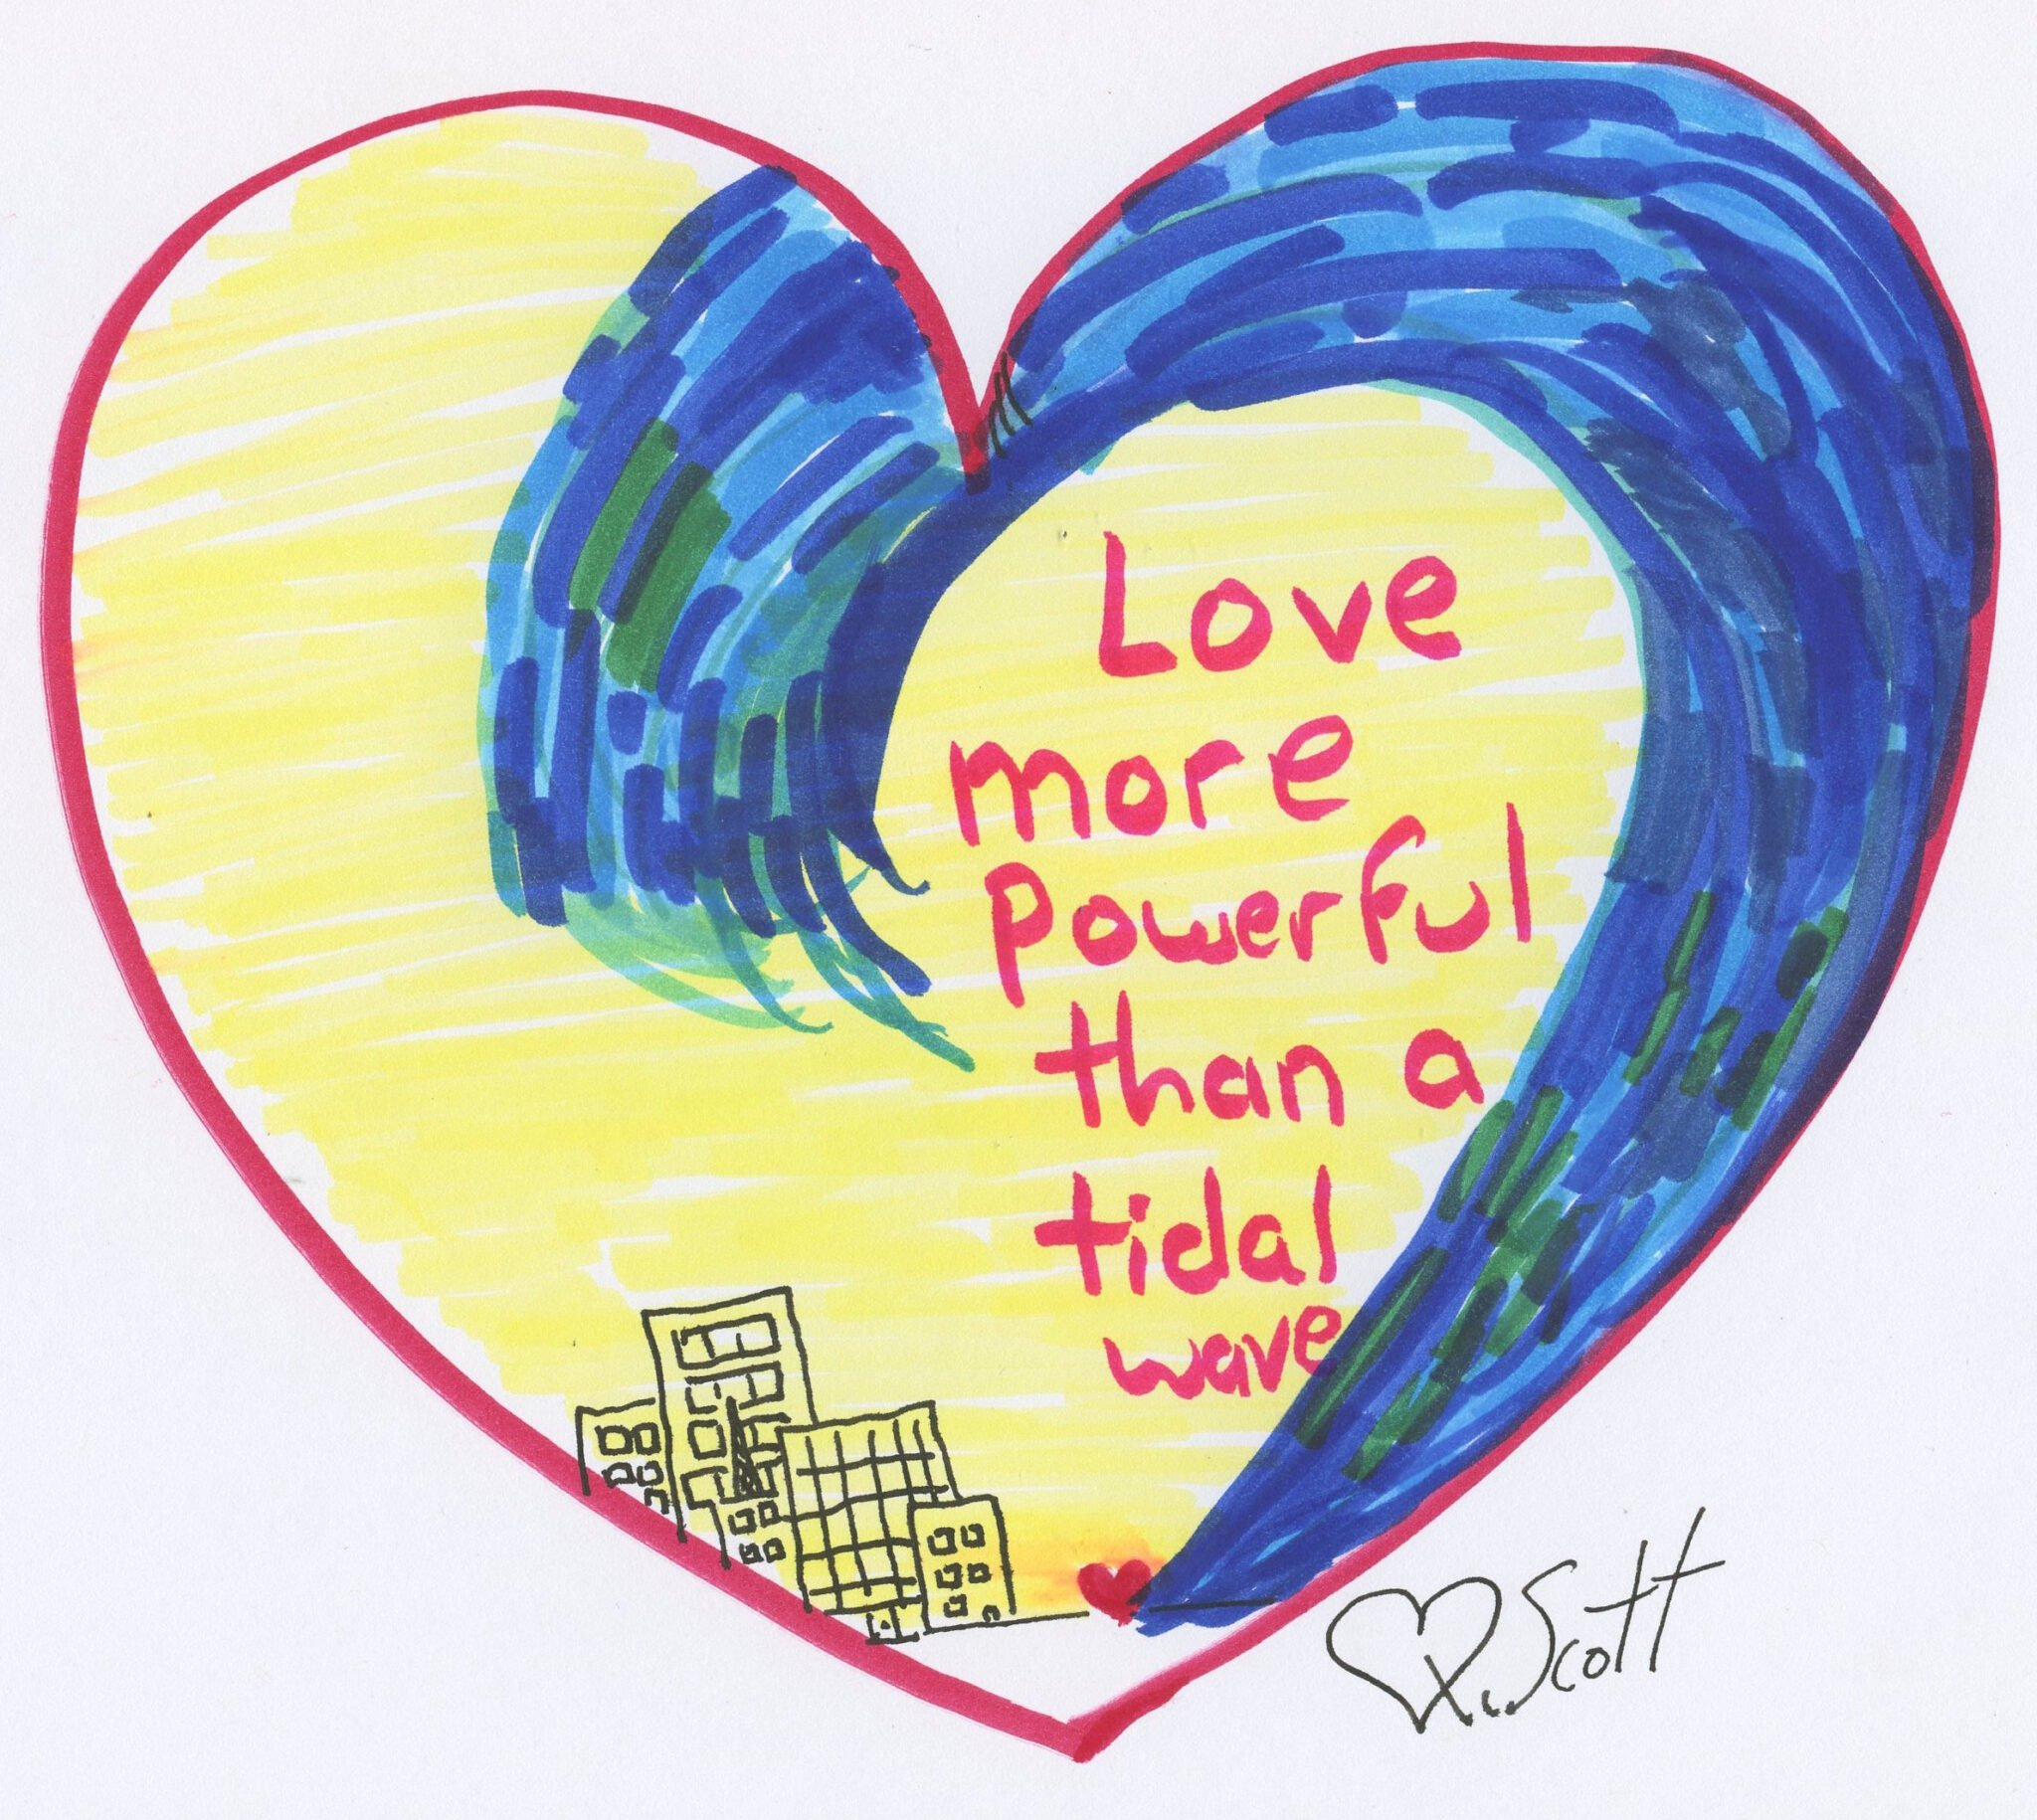 A little bit of love is more powerful than a tidal wave.